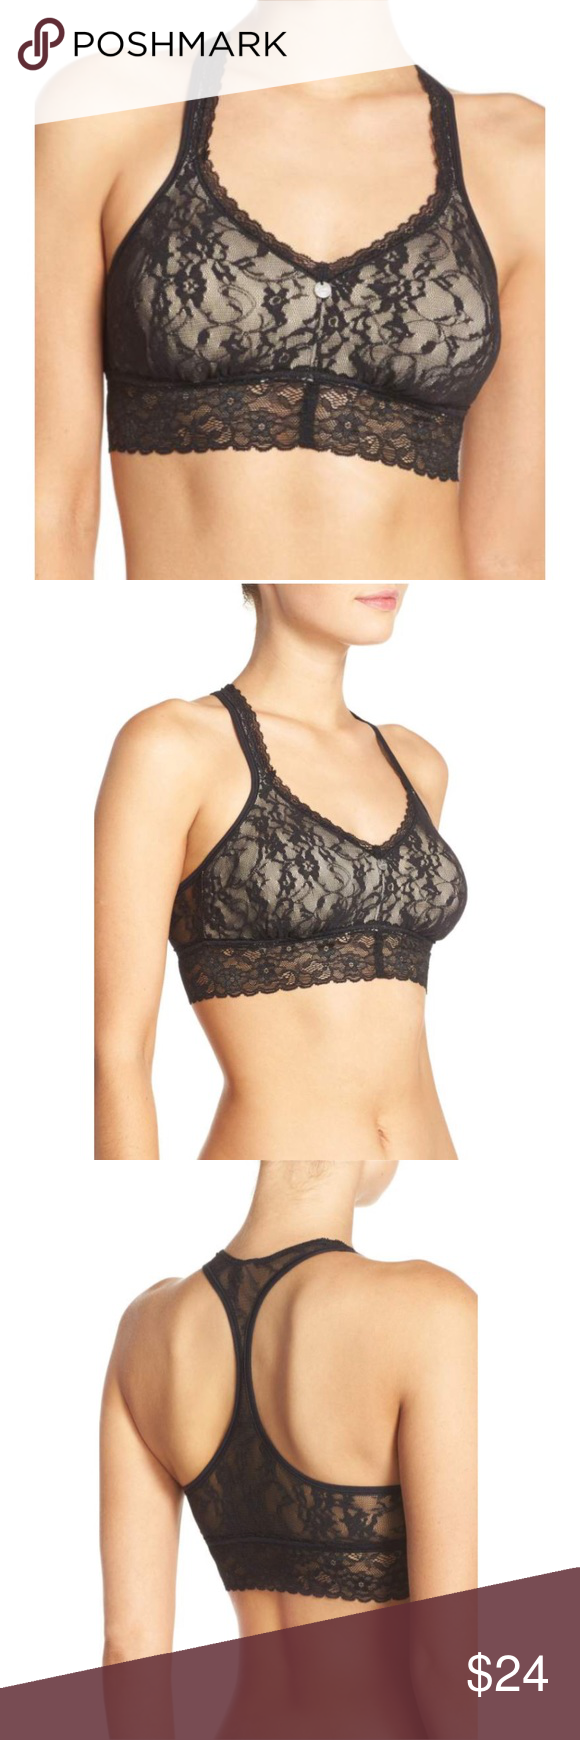 e641386616fe0c DKNY Signature Lace T-Back Padded Bralette L T-Back design. Removable pads.  Black. Other colors available. Wire free. Pull over design.